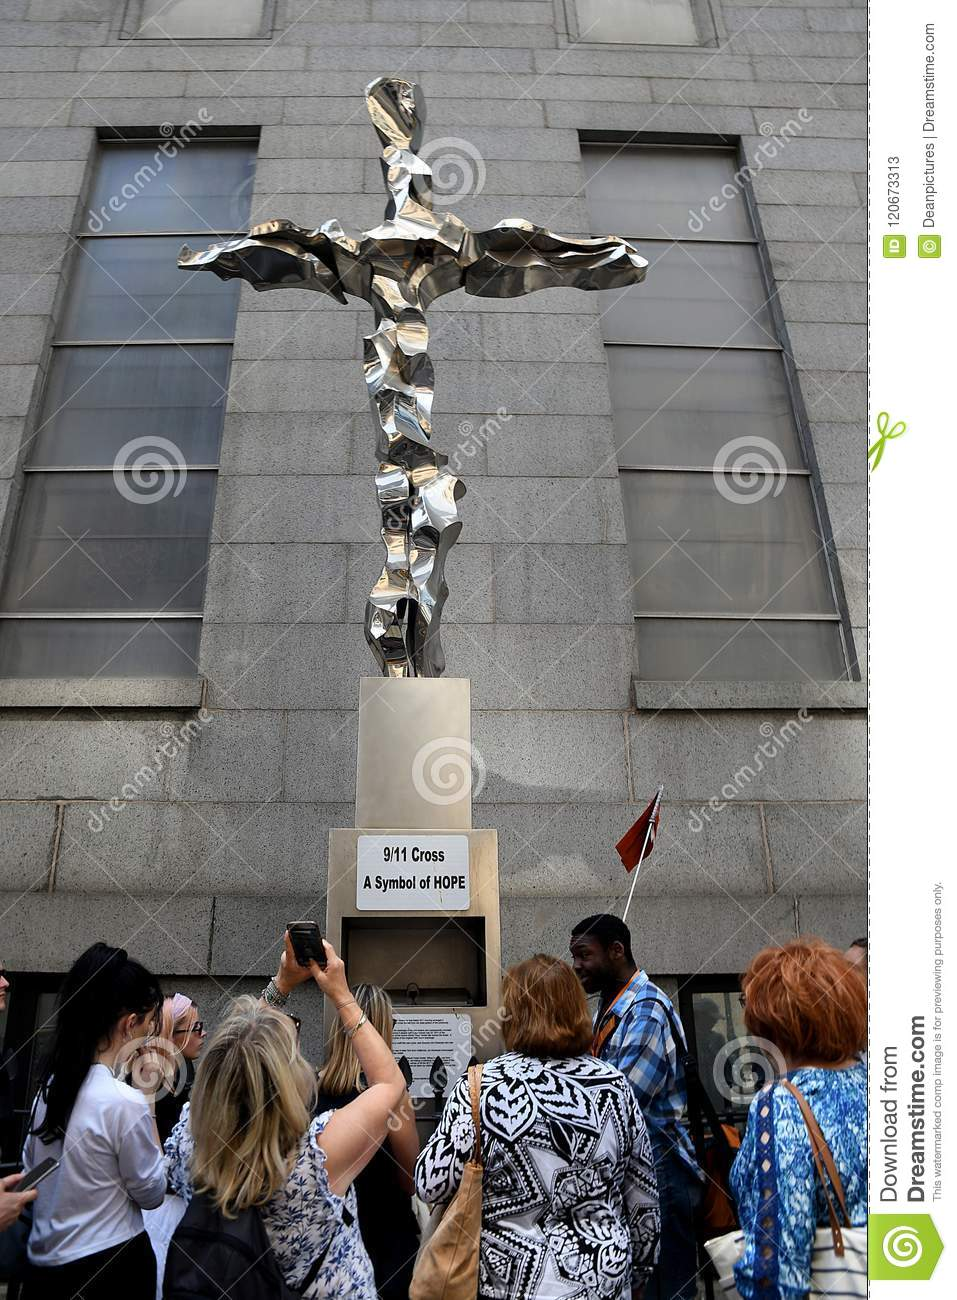 9 11 cross a symble of hope editorial stock photo image of jews